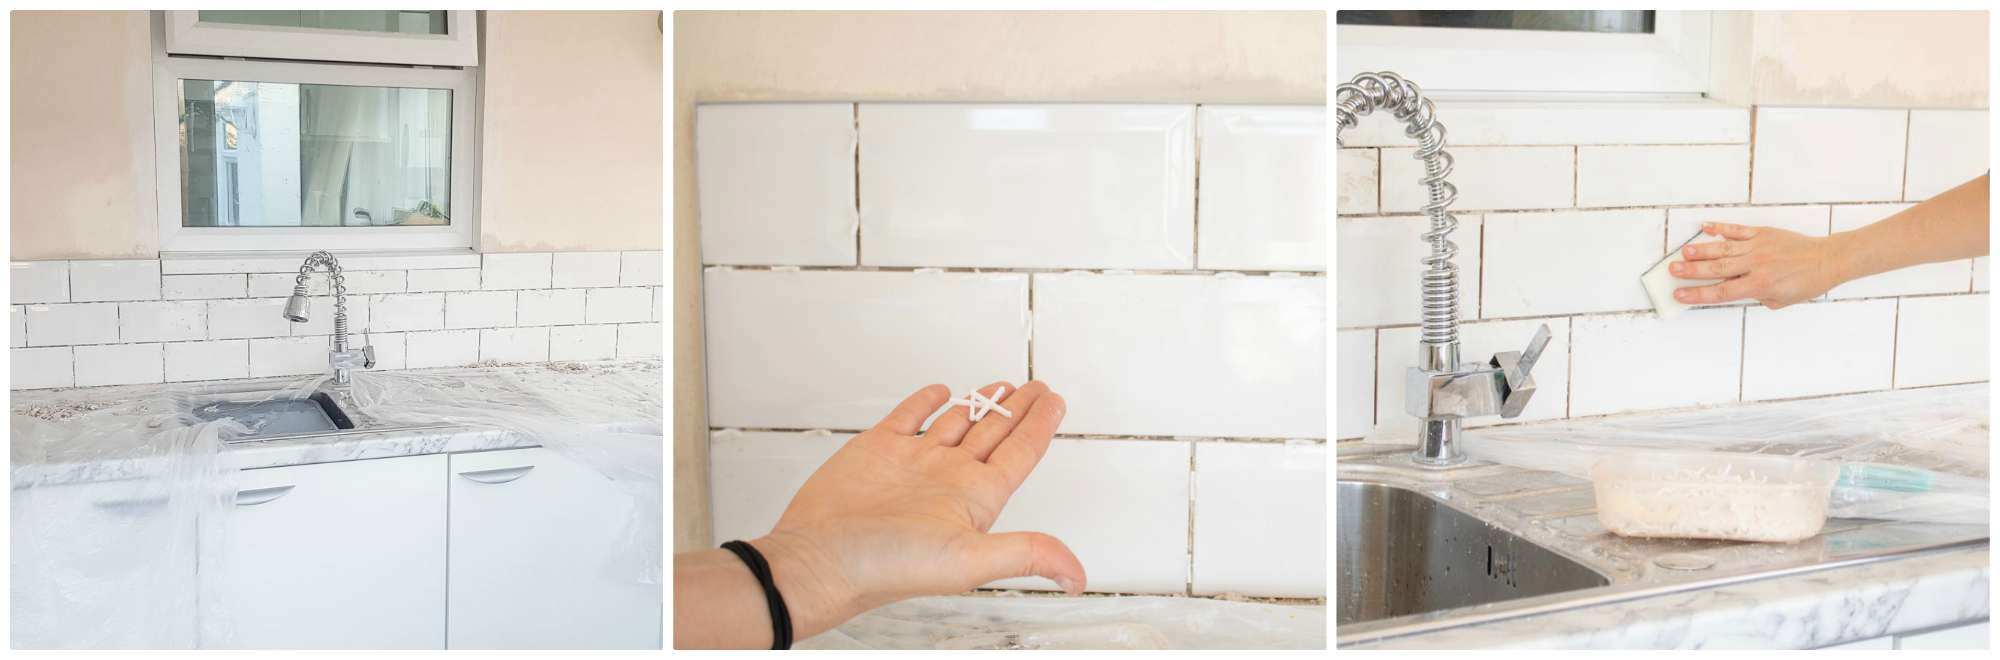 removing tile spacers and cleaning adhesive with scourer